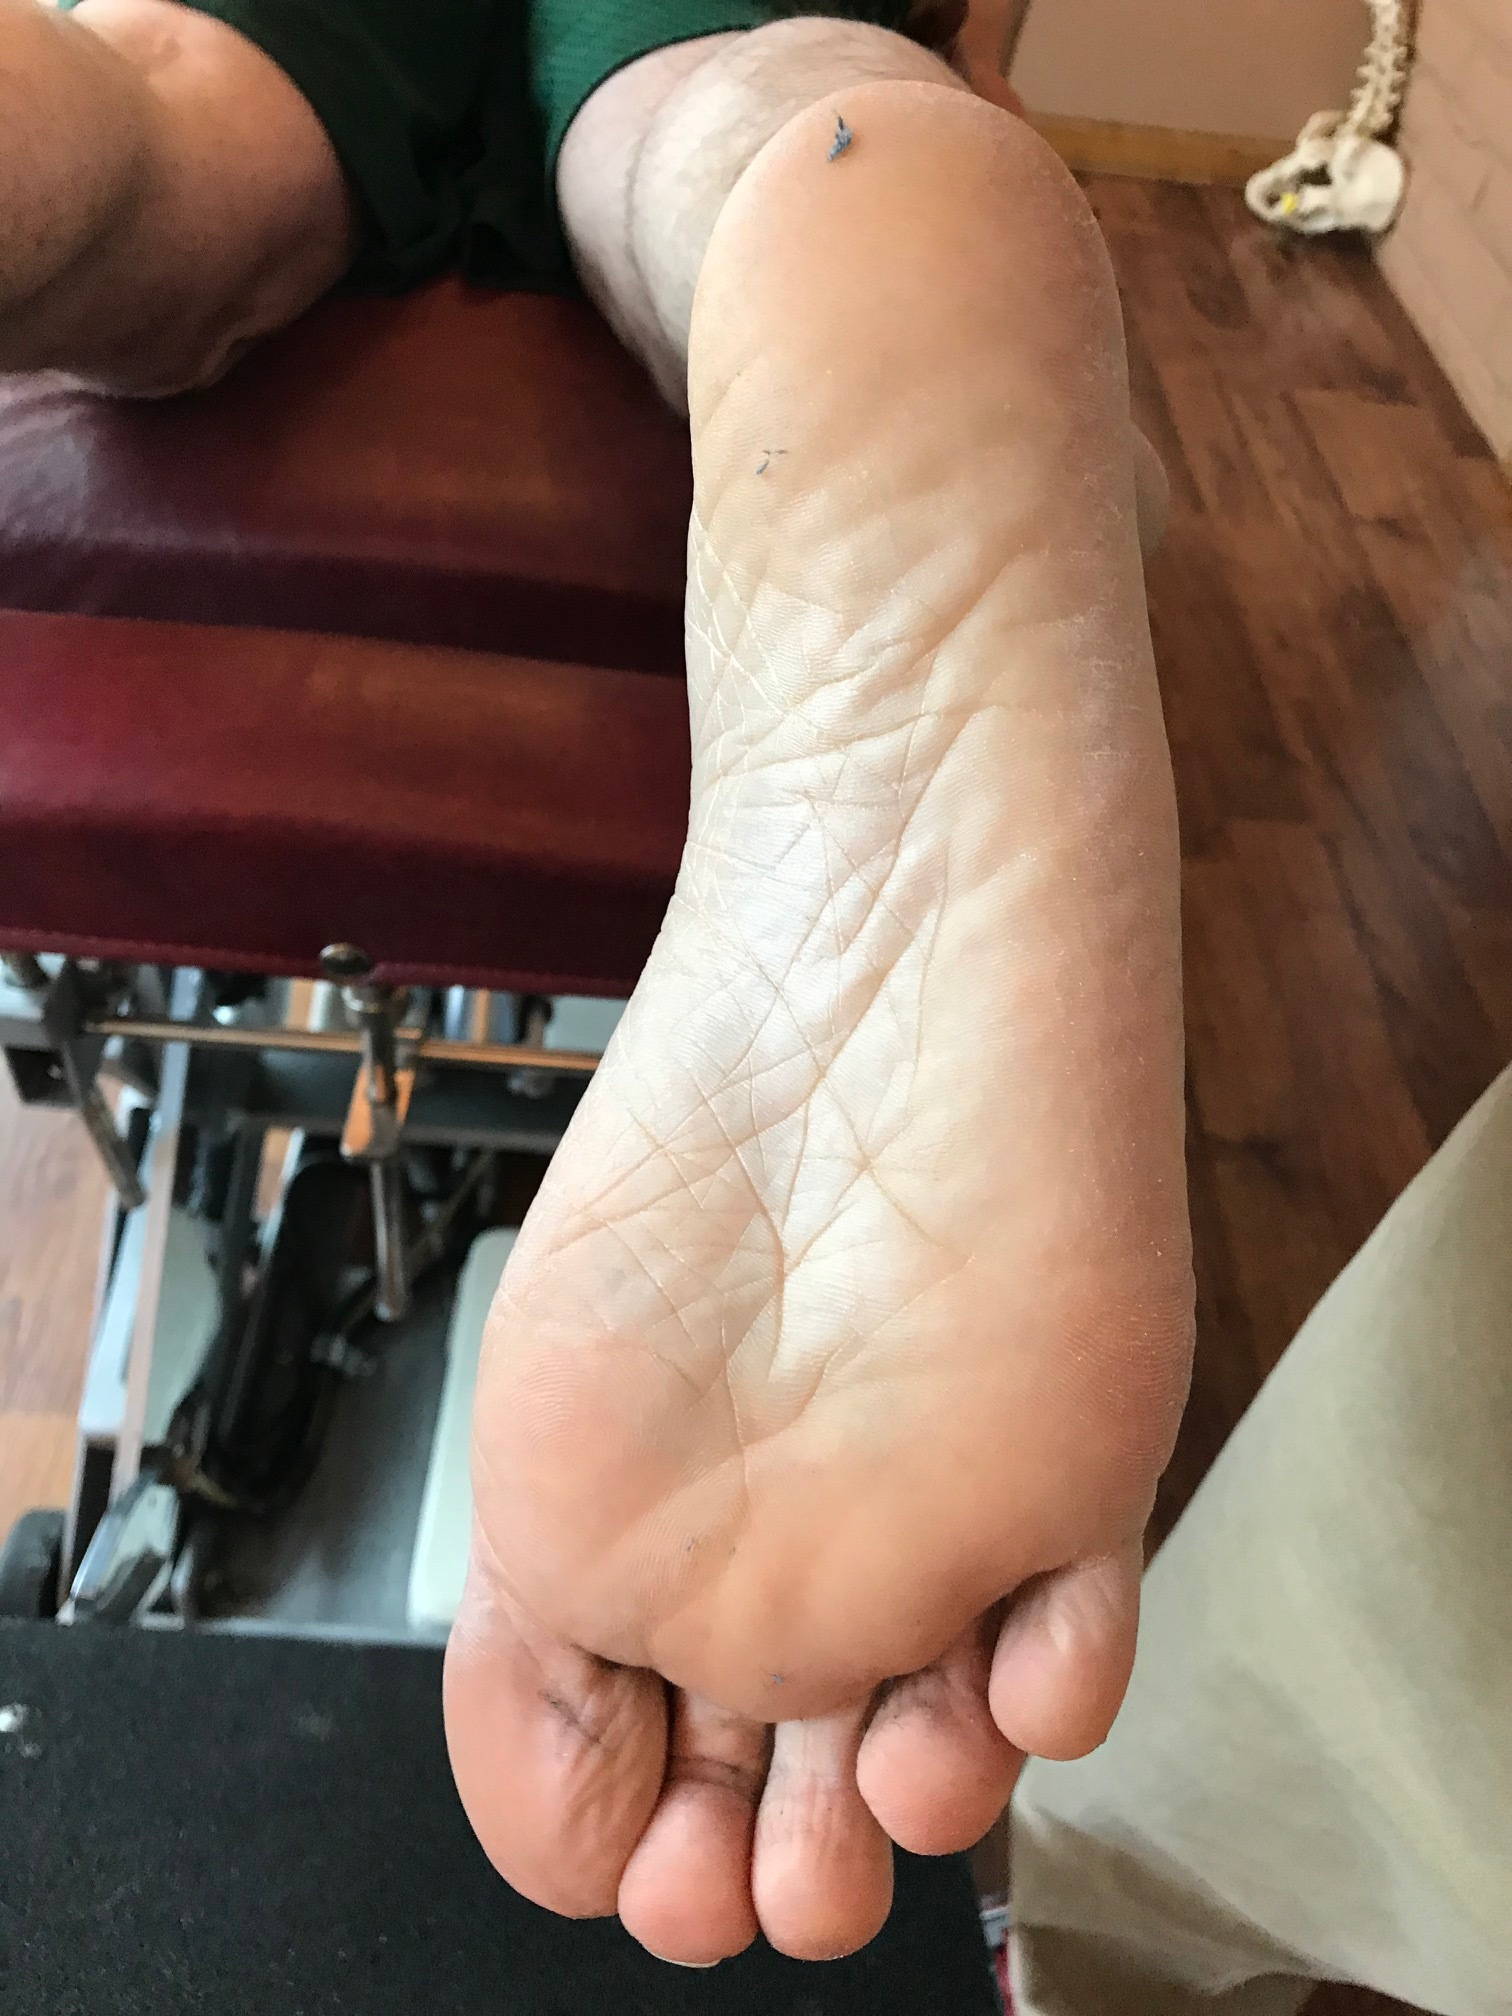 a line bisecting the calcaneus should pass between the 2nd and 3rd metatarsal shafts. If talar tosion was present, the rearfoot would appear more adducted